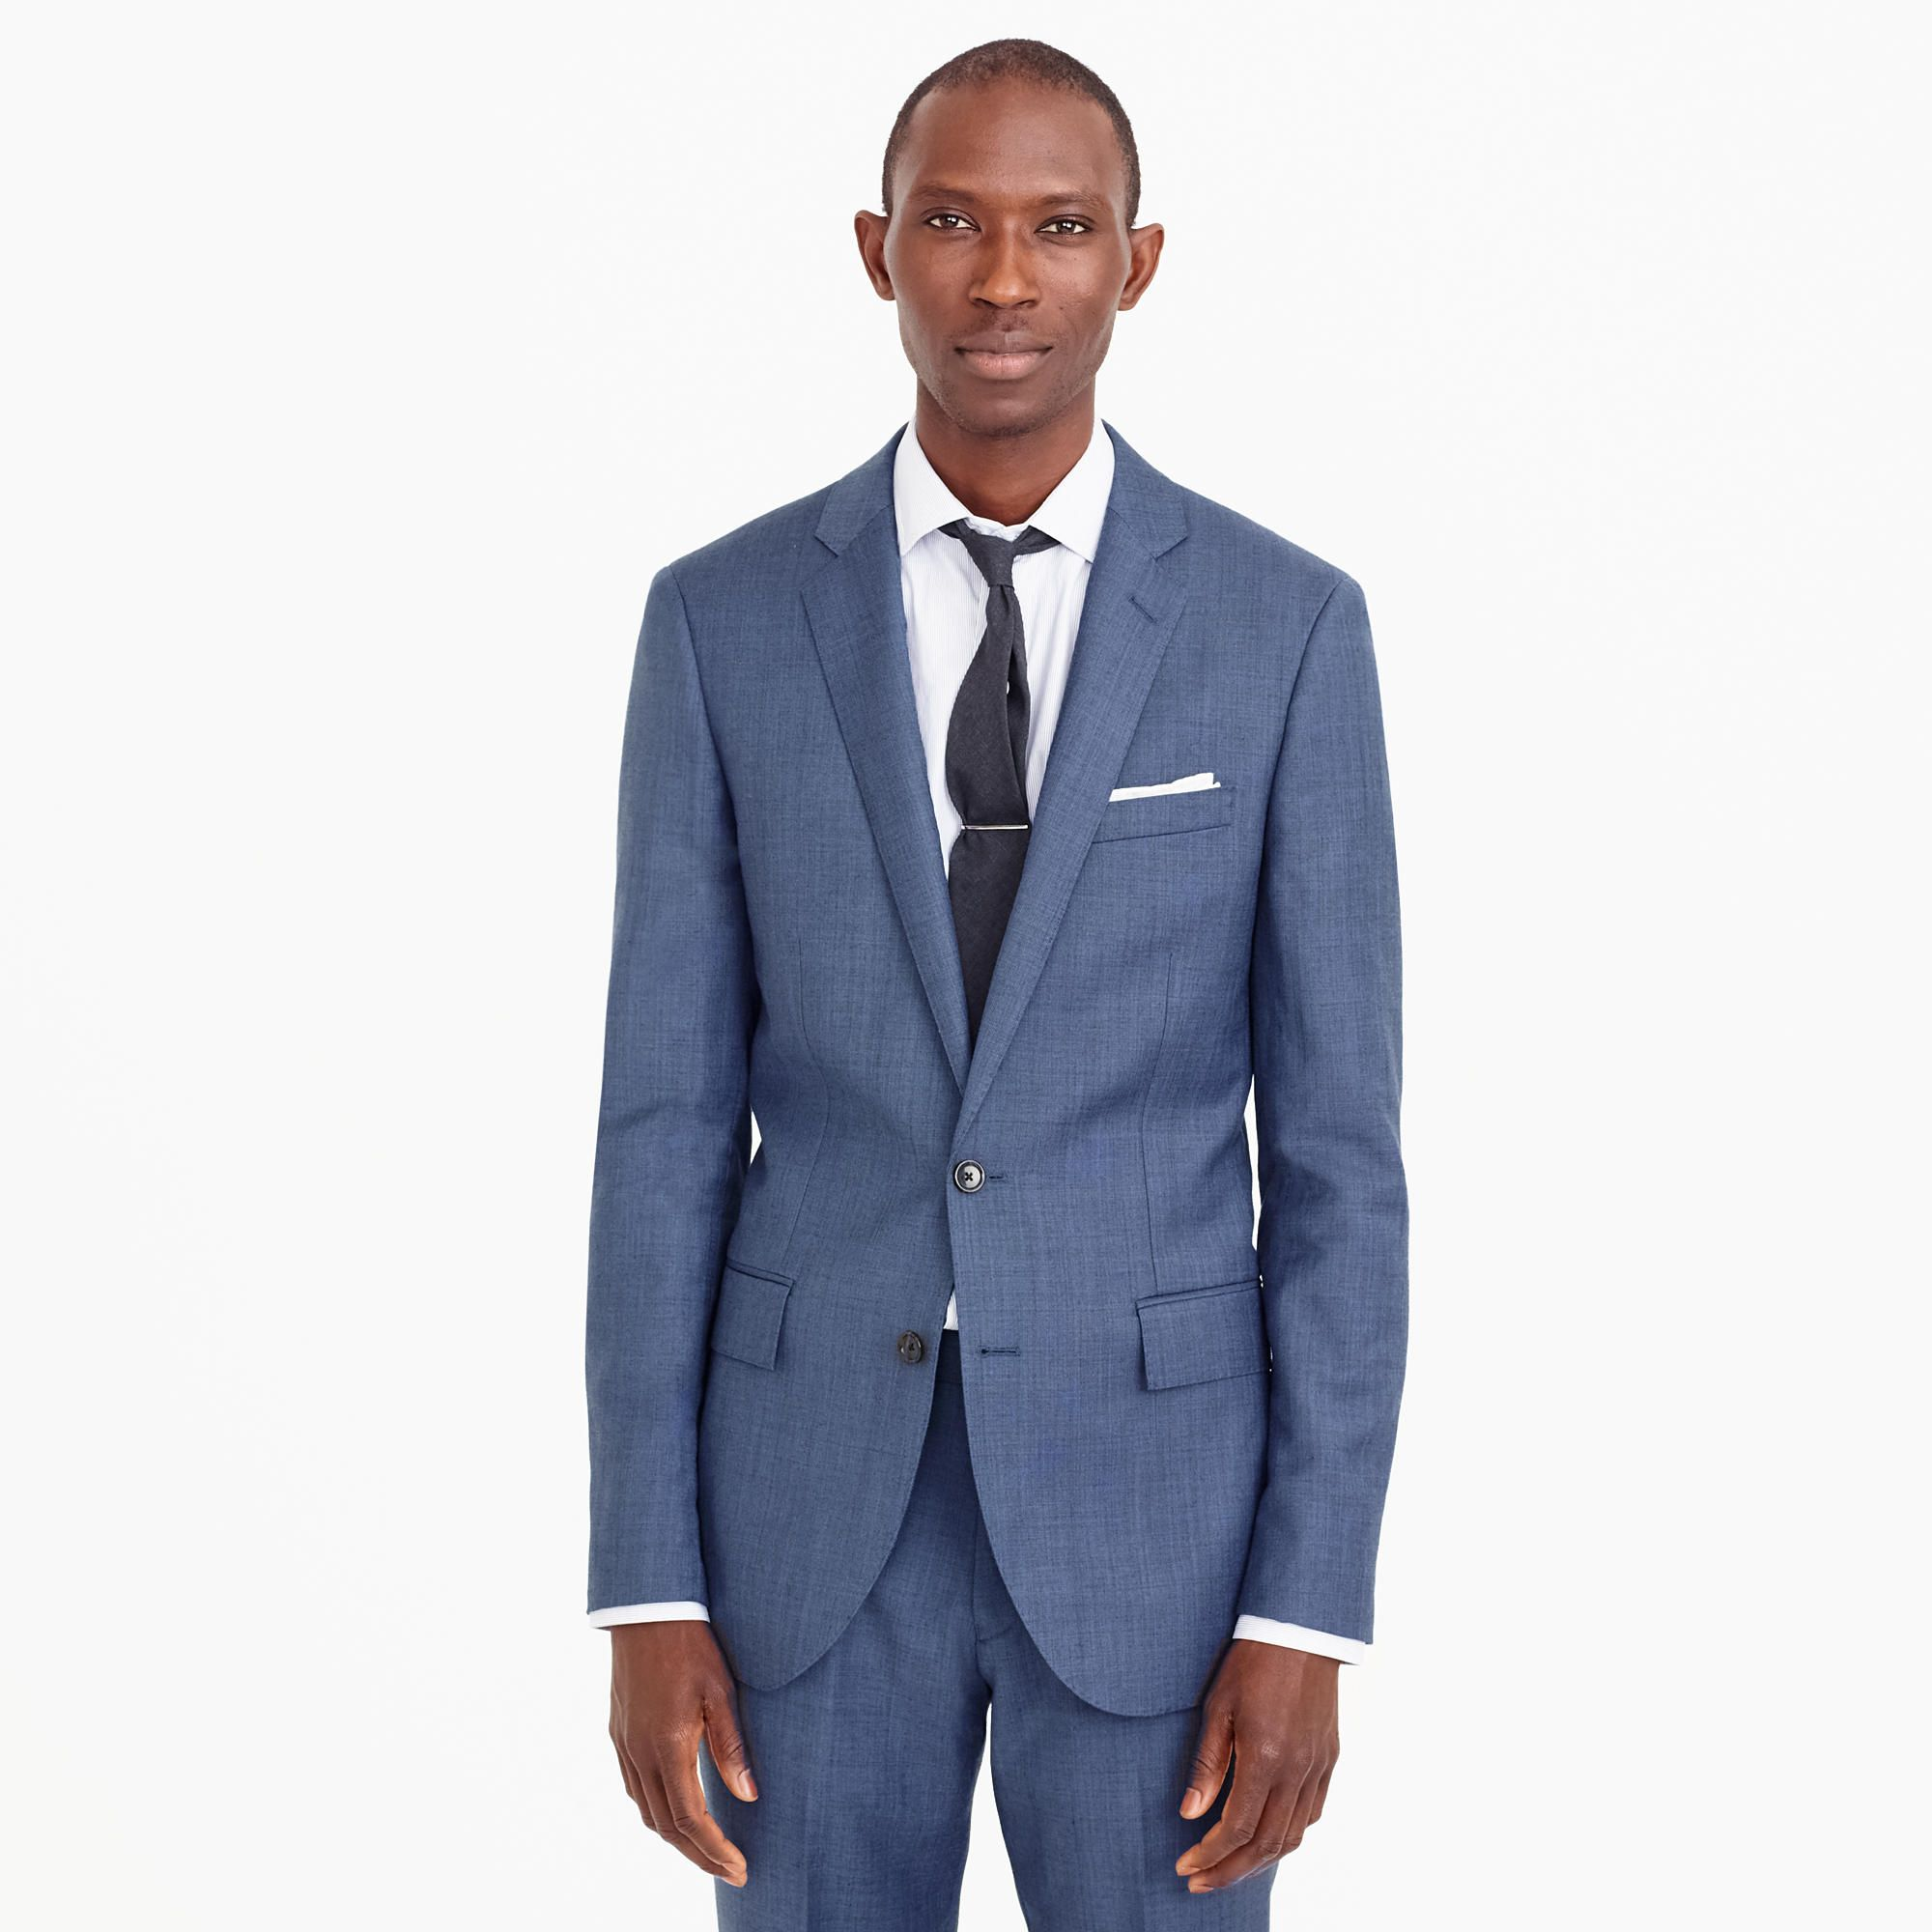 f7349593dba91a Ludlow Slim-fit suit jacket with double vent in Italian worsted wool ...